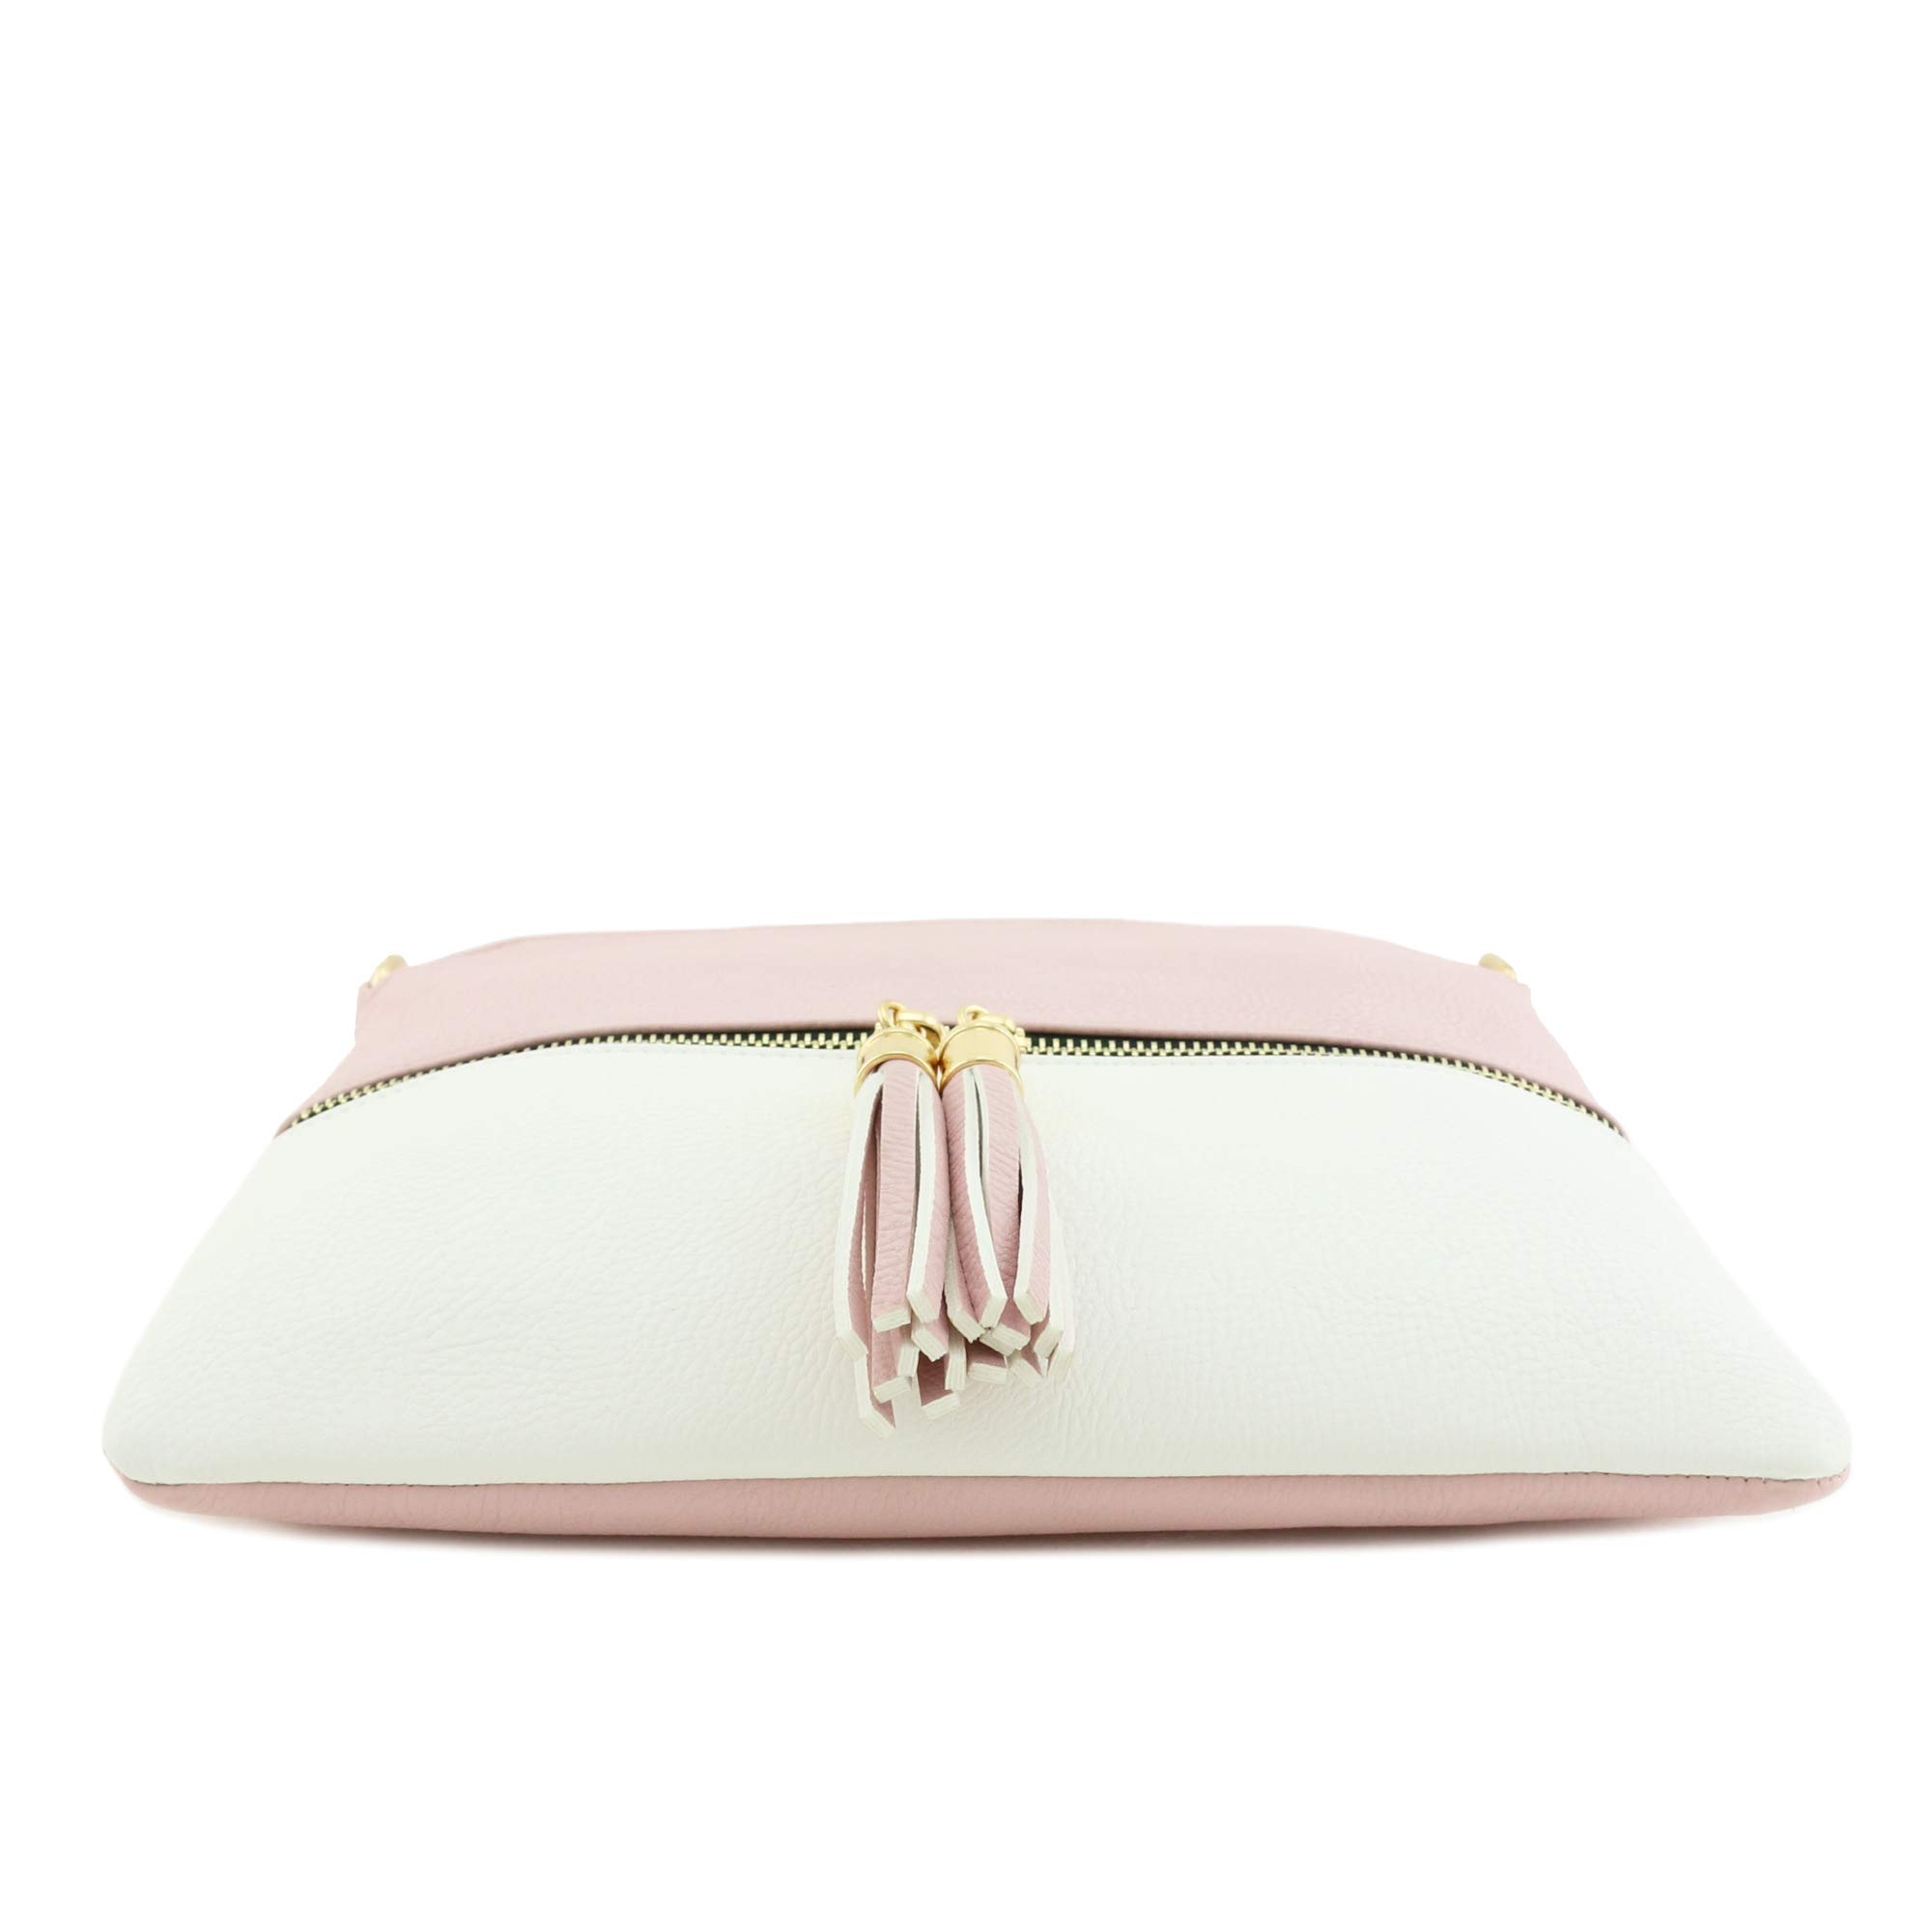 Lightweight Colorblock Medium Crossbody Bag with Tassel (Blush/White) by DELUXITY (Image #4)